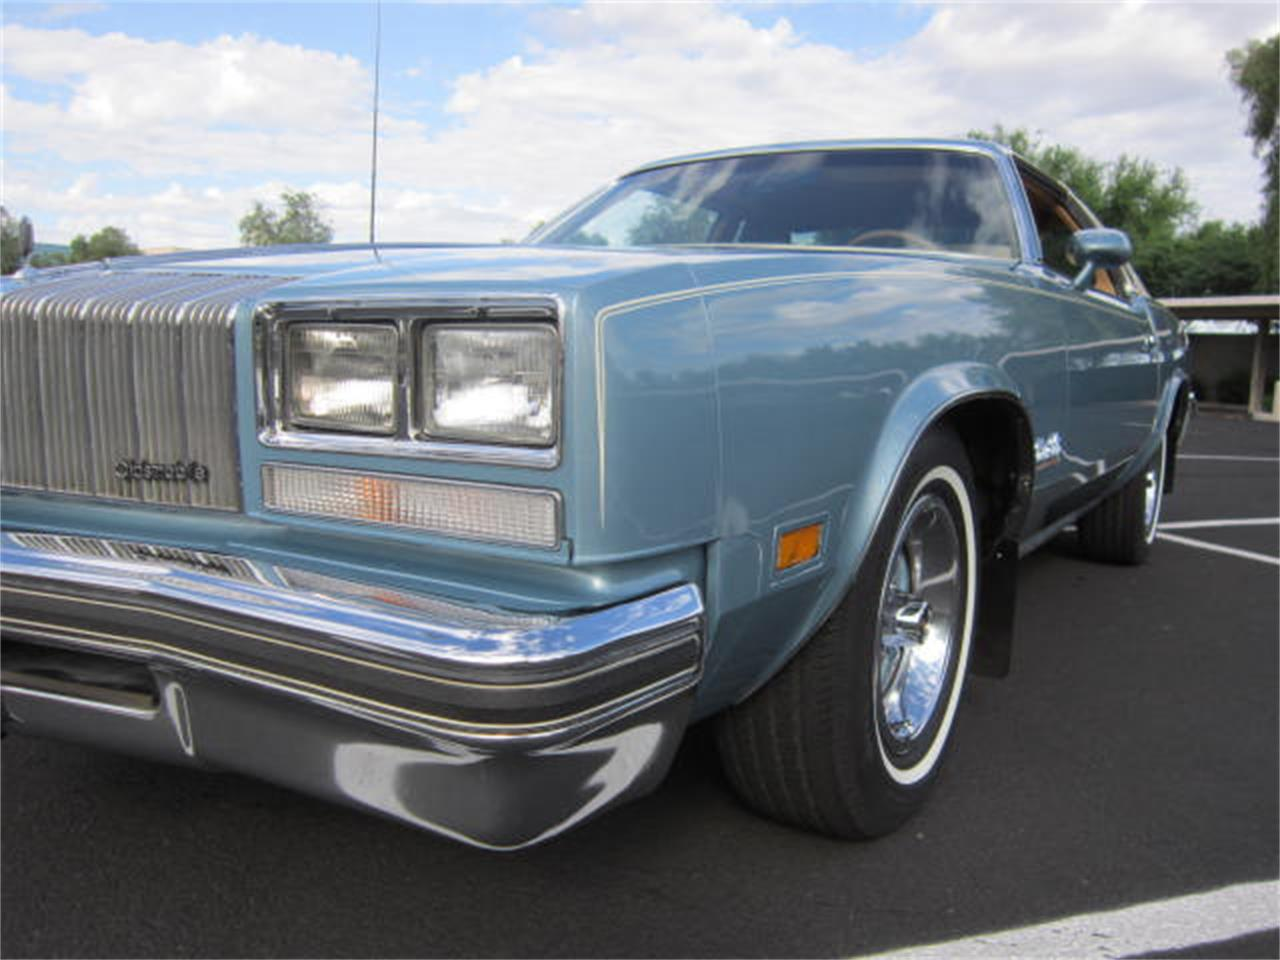 Large Picture of '77 Cutlass - $15,000.00 - DISY